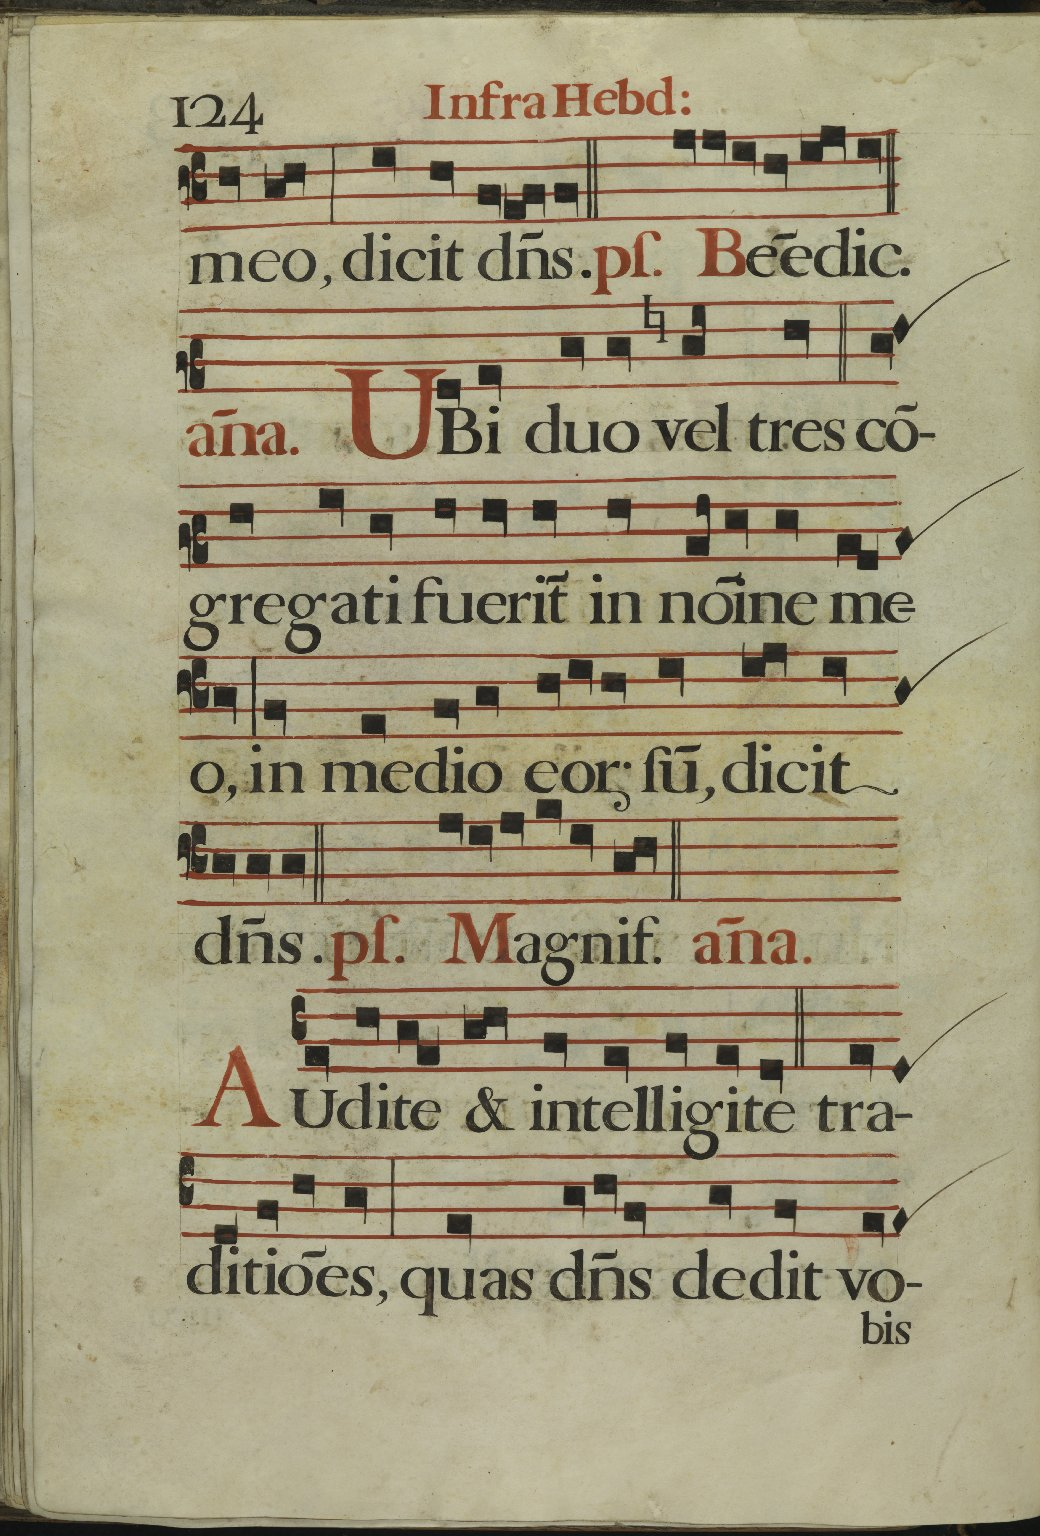 The Spanish Antiphoner. Page 124